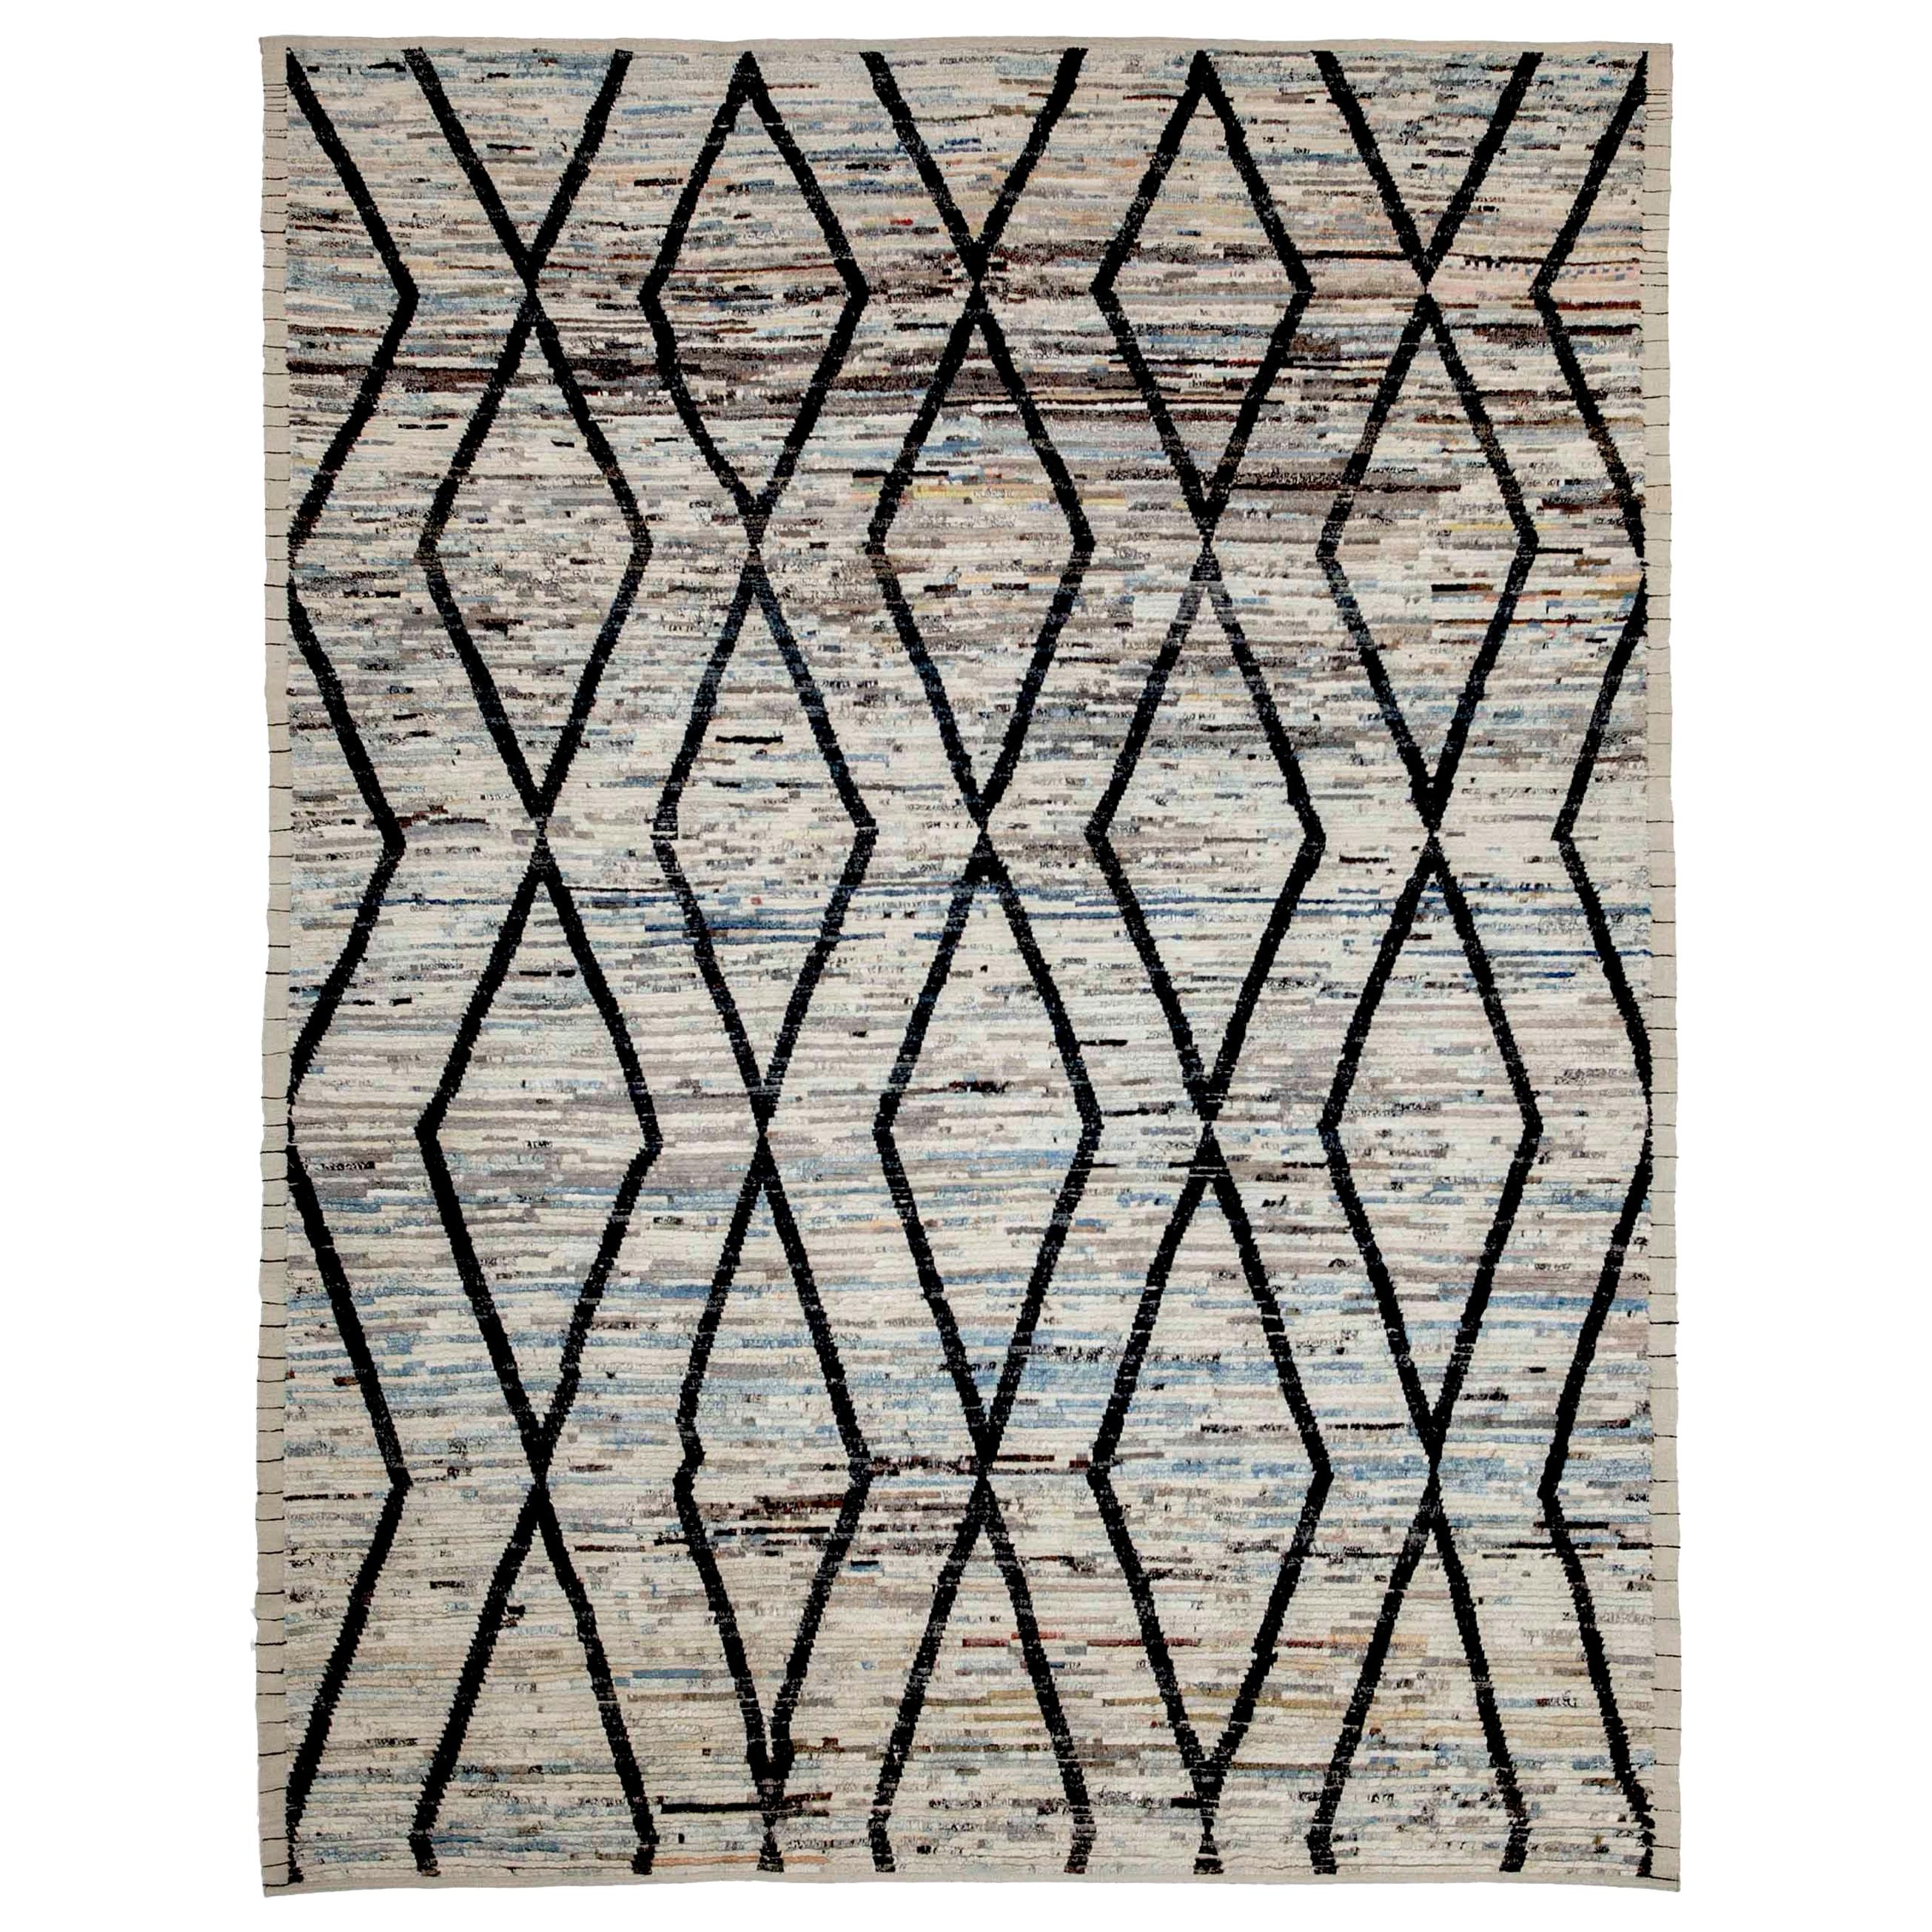 Modern Afghan Rug in Moroccan Style with Black Tribal Diamond Details